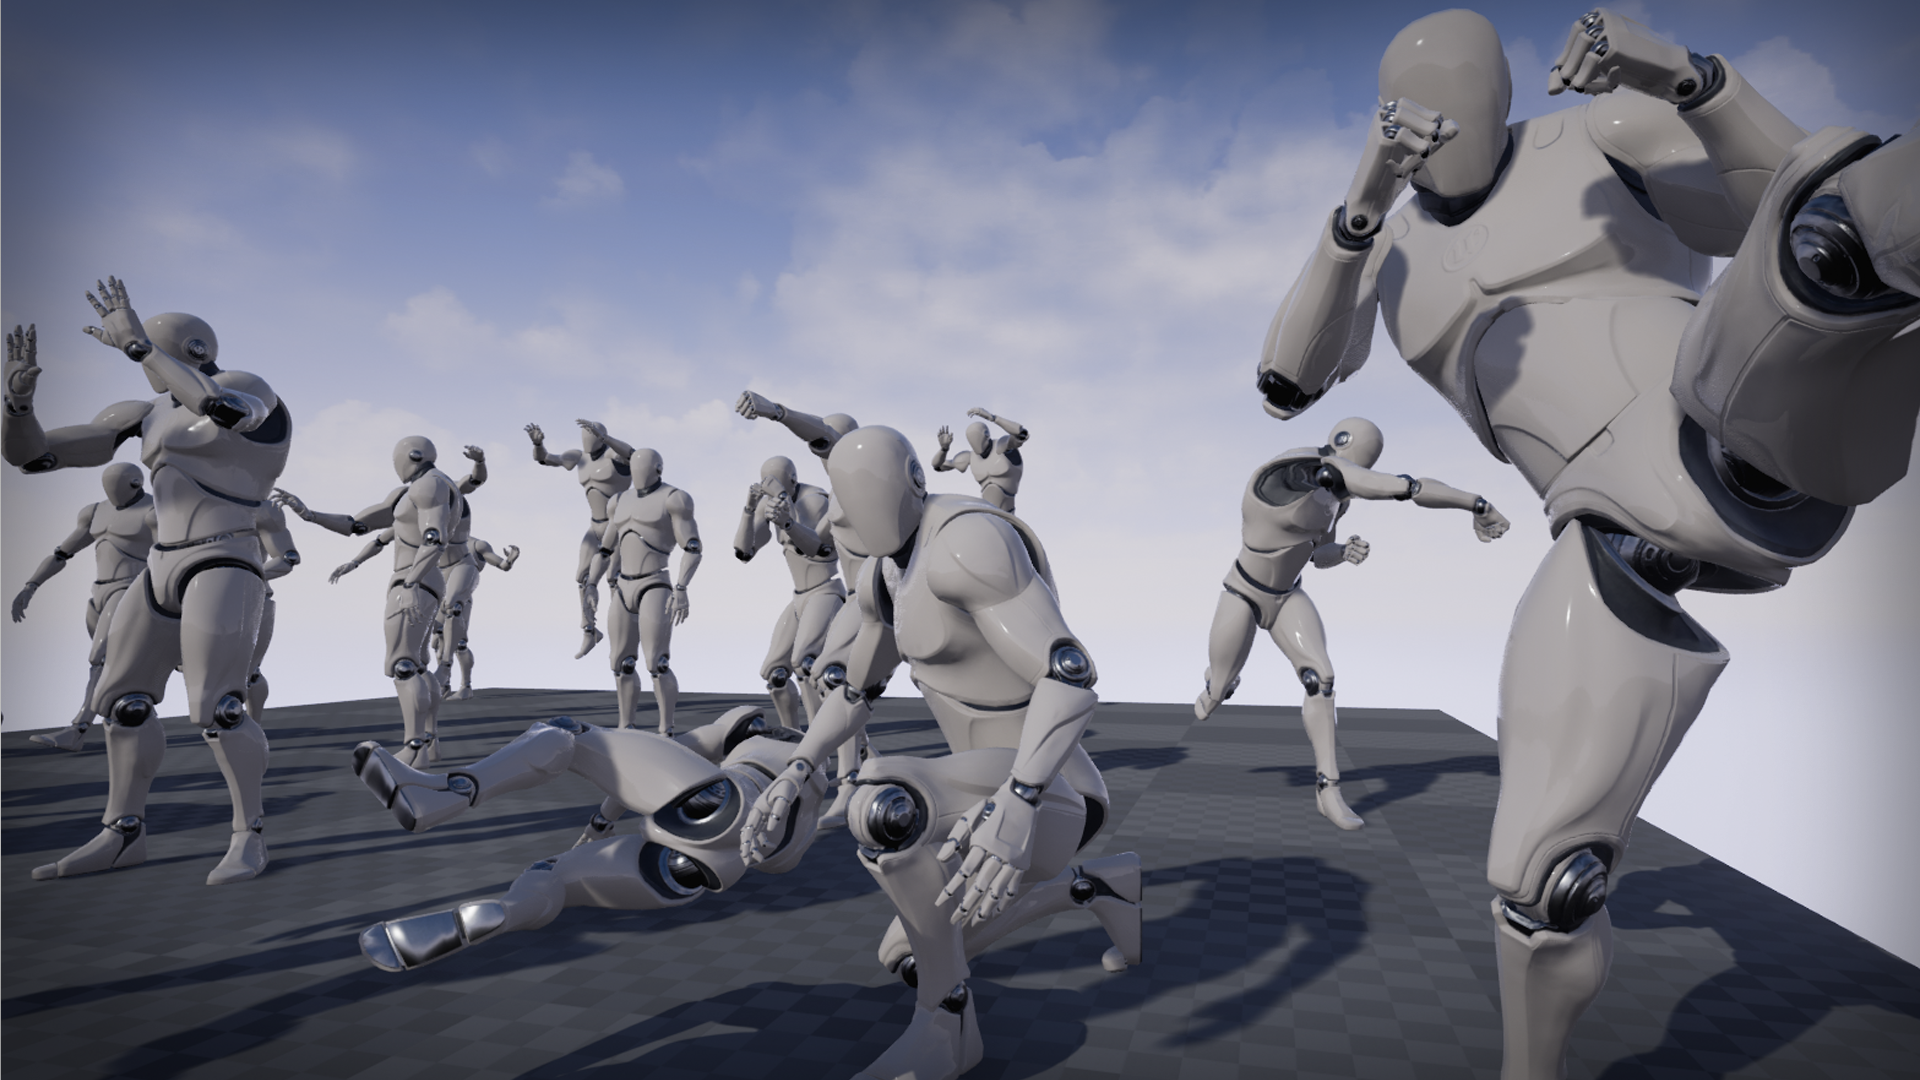 Character Design Unreal Engine 4 : Movement animset pro by kubold in animations ue marketplace